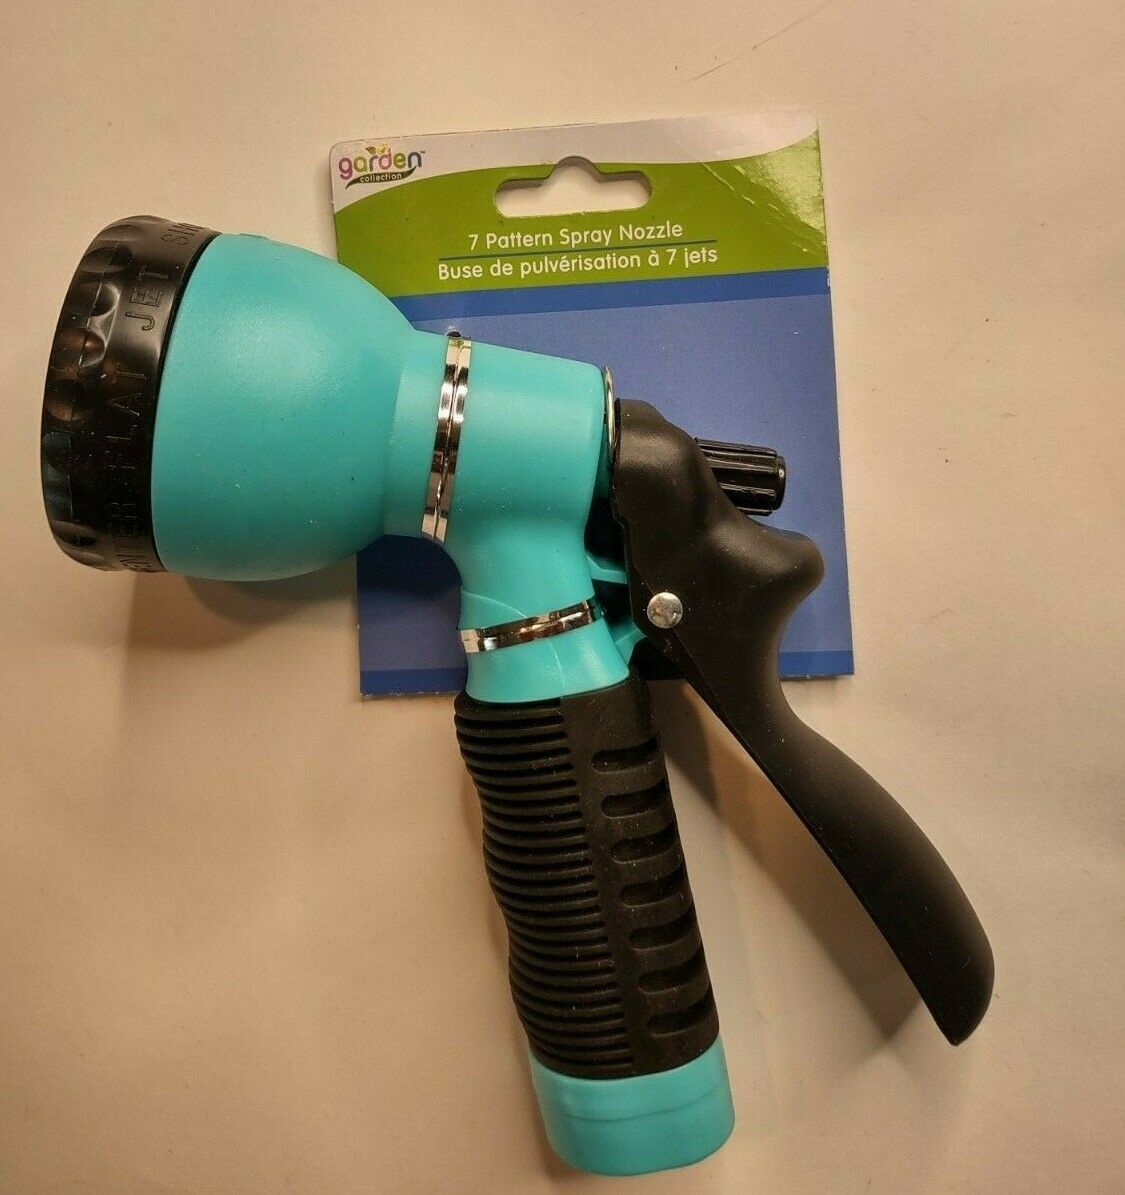 Garden Hose Teal Blue and Black Hard Plastic 7 Spray Nozzle Pattern Options